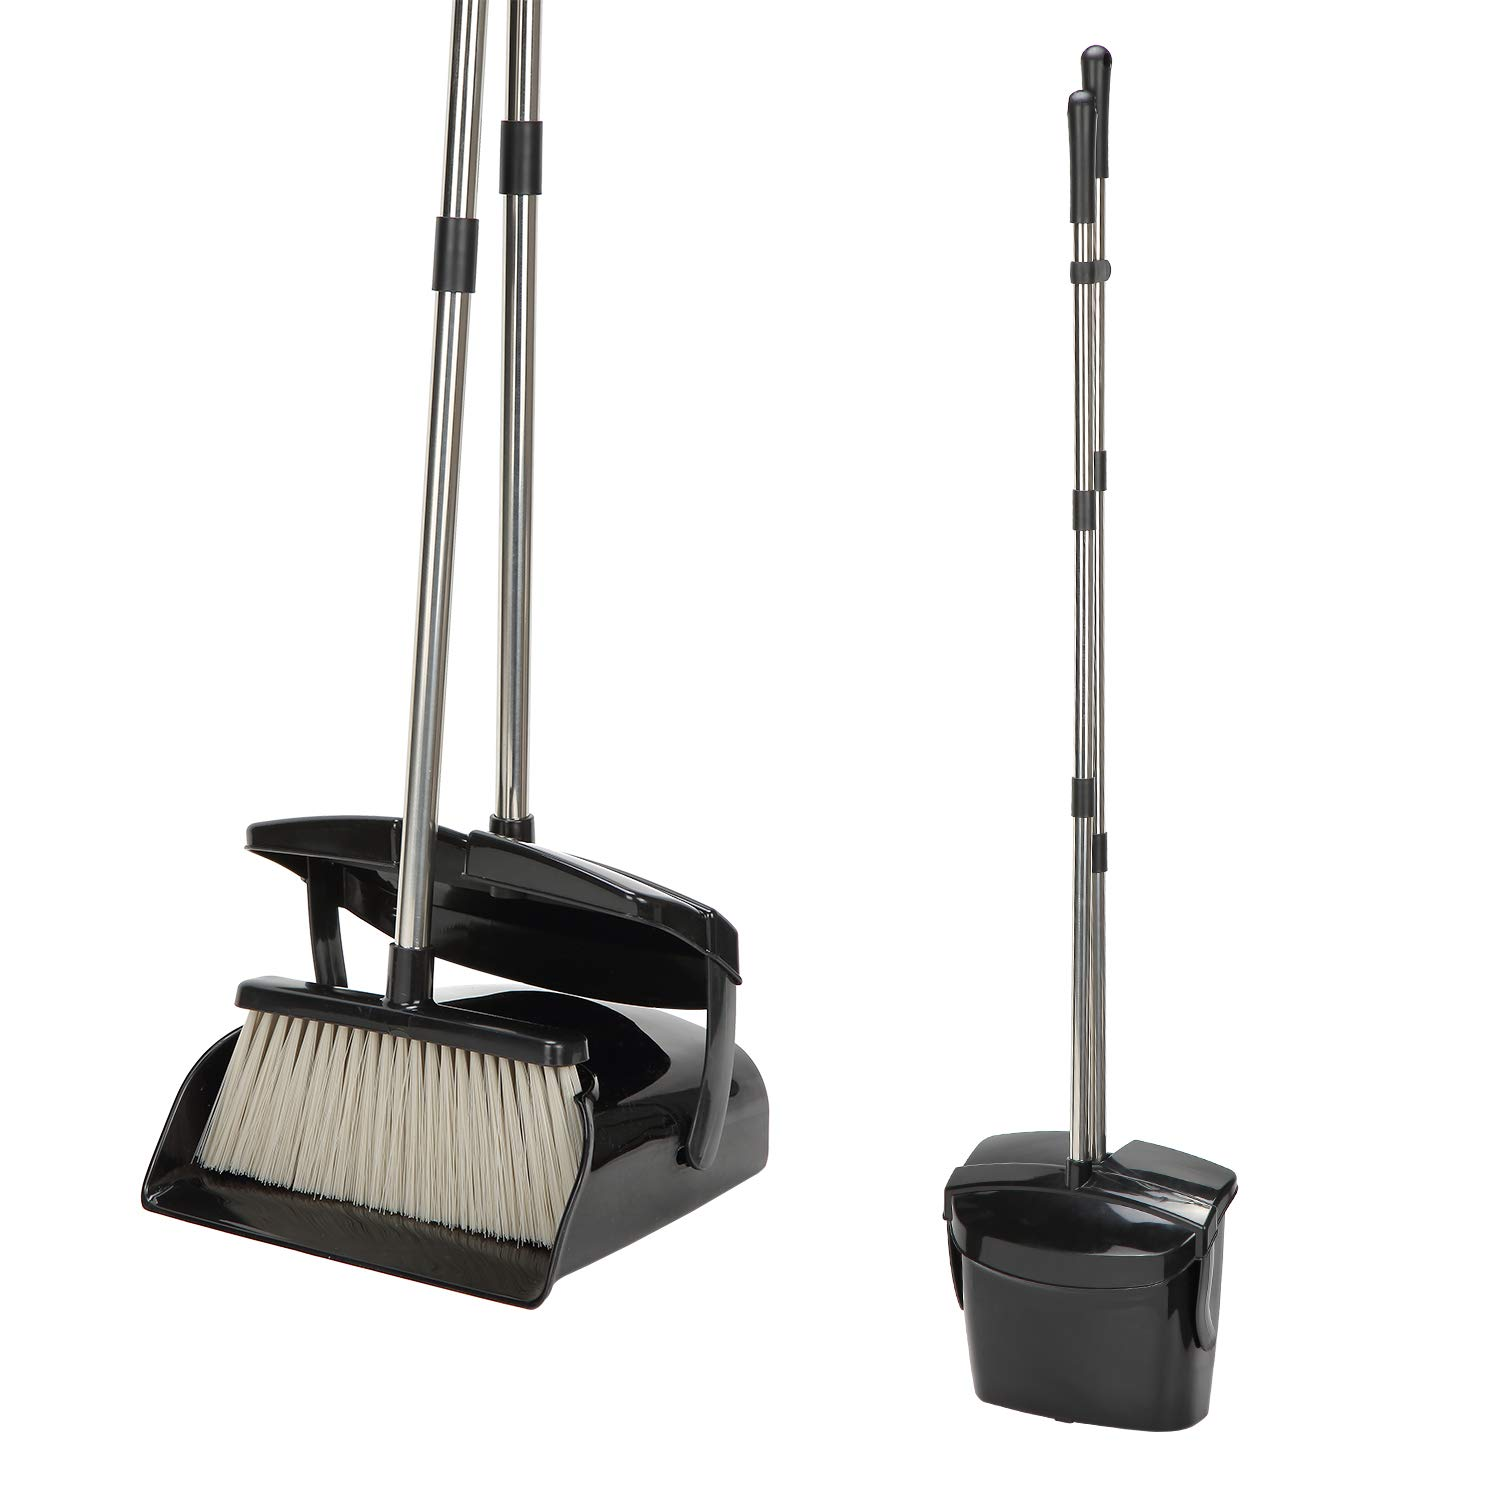 Broom and Dustpan Set - Large Upright Dust pan and 48-inch Long Handled Broom/Broom and Dustpan Comb for Home Office Industry Lobby (Black) by Cszxx